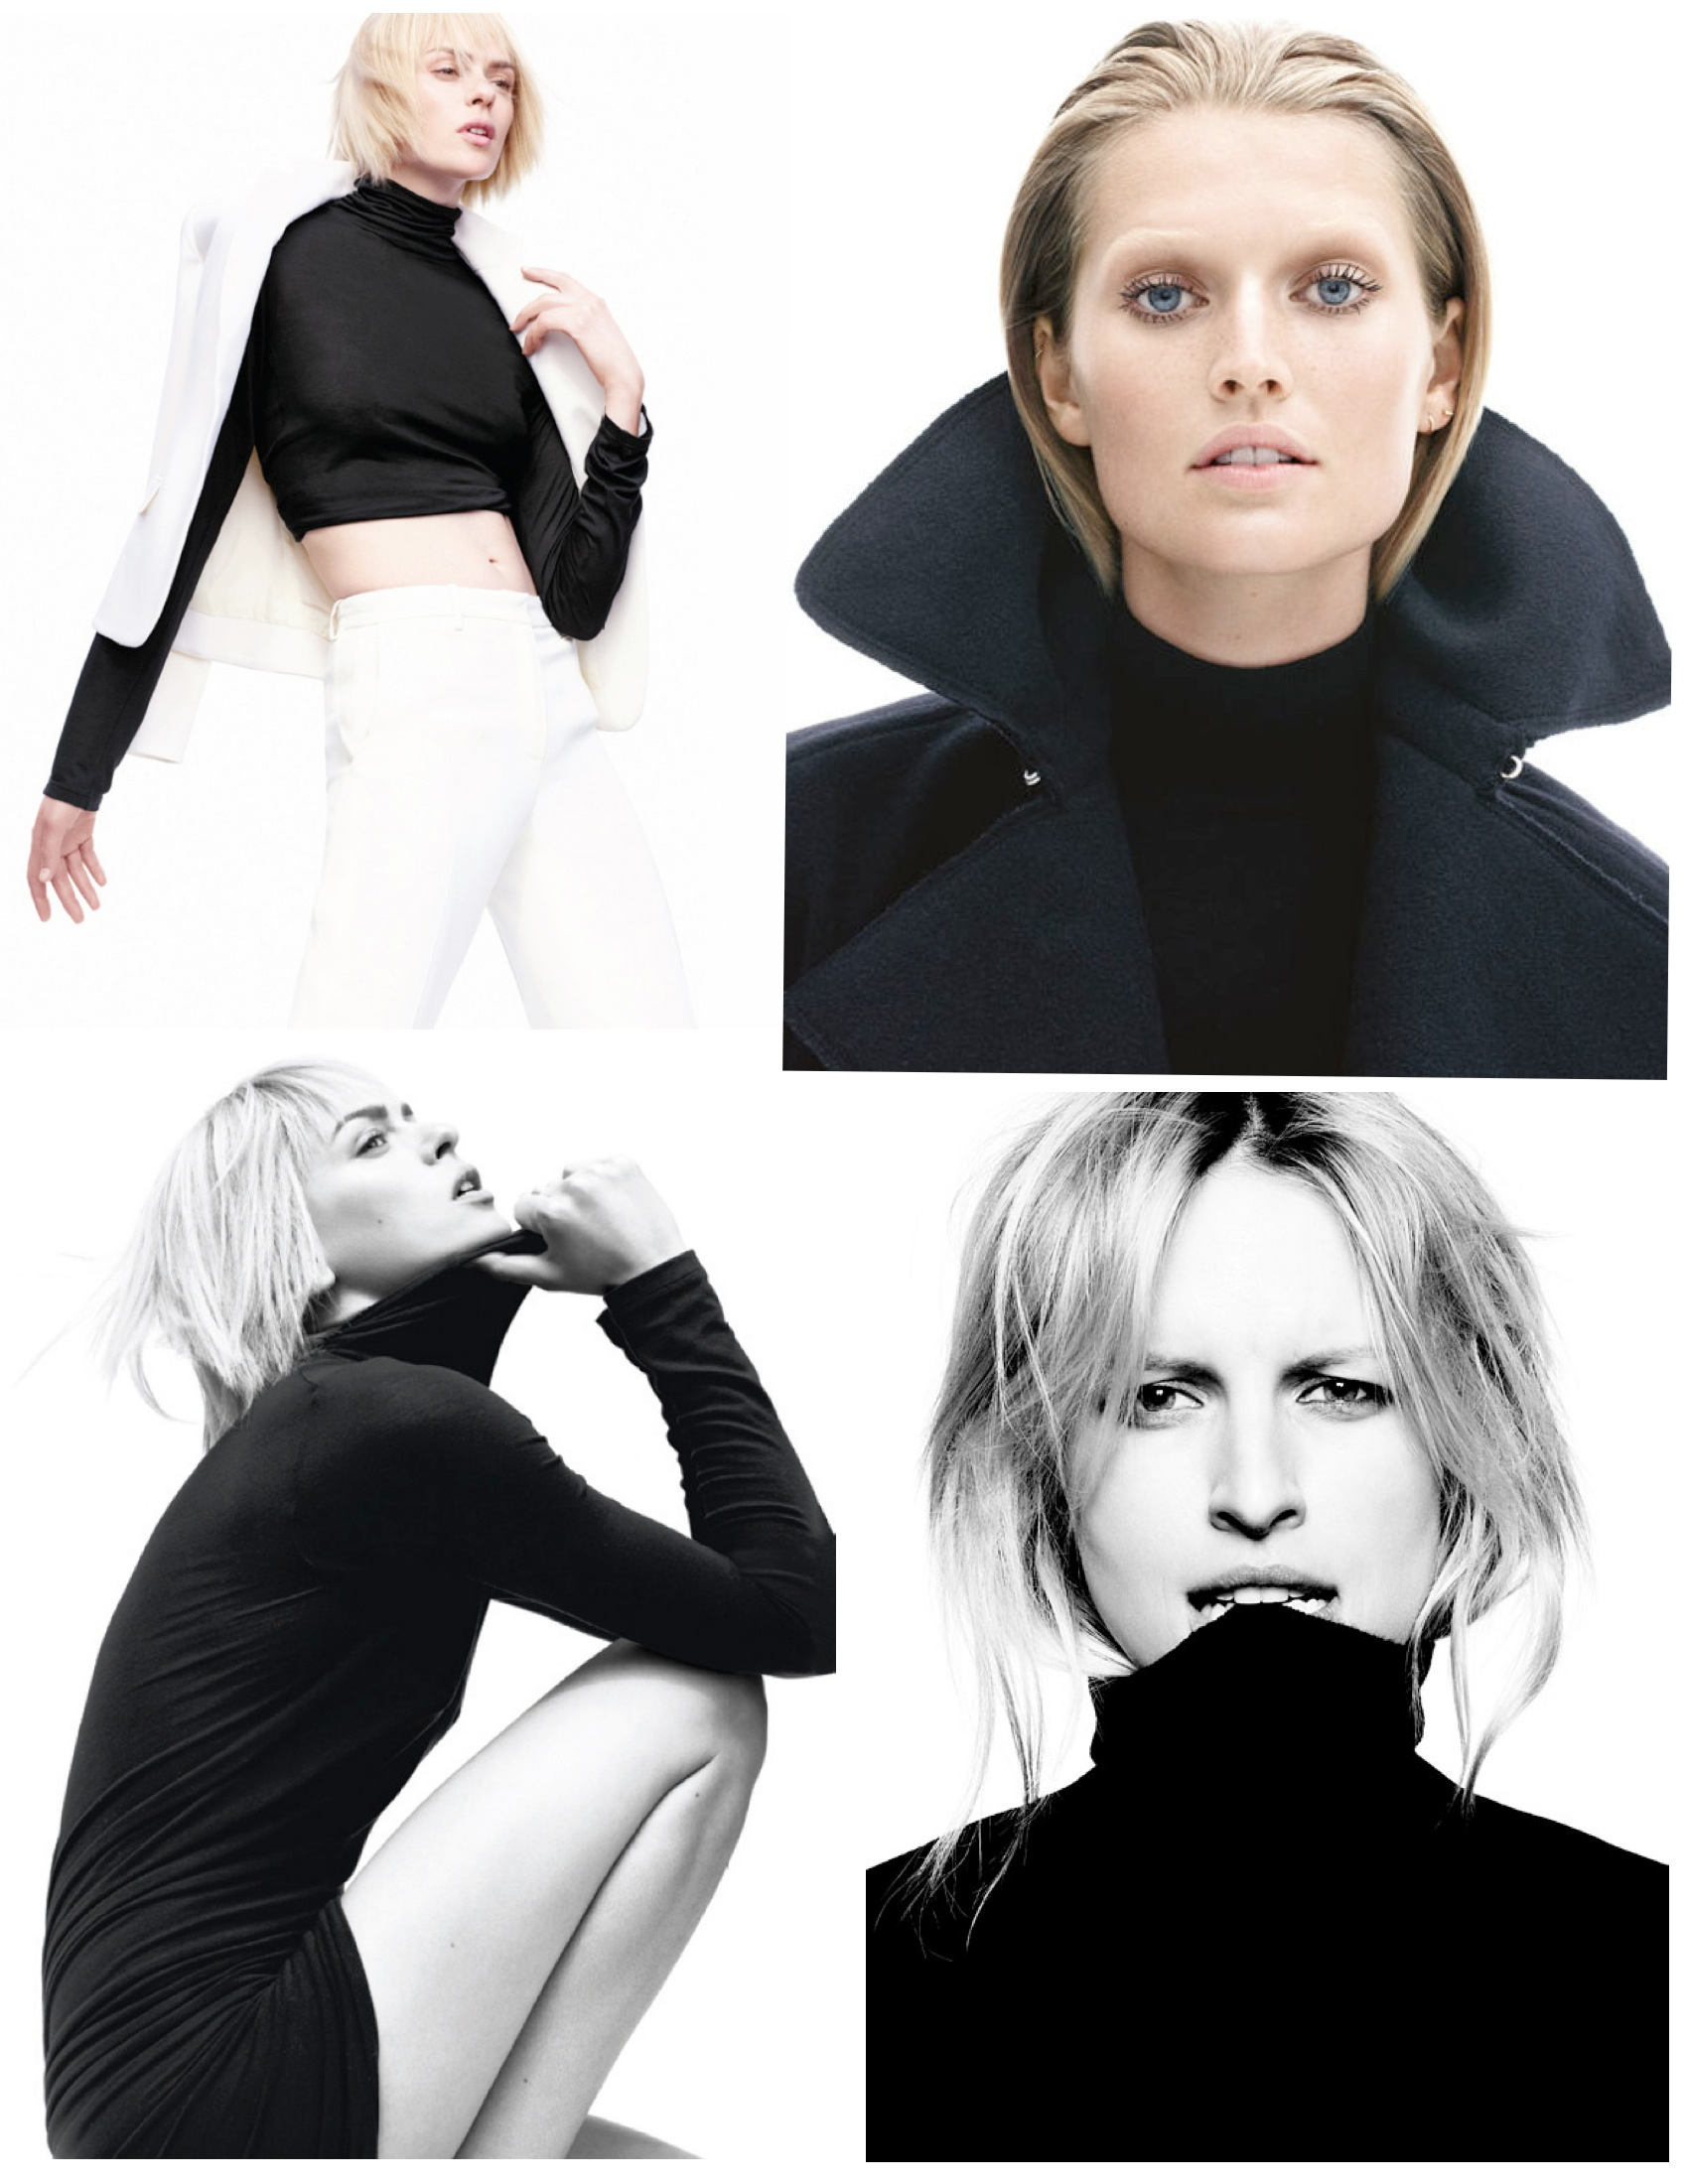 A High Collared Fashion Classic The Iconic Black Turtleneck House Appeal